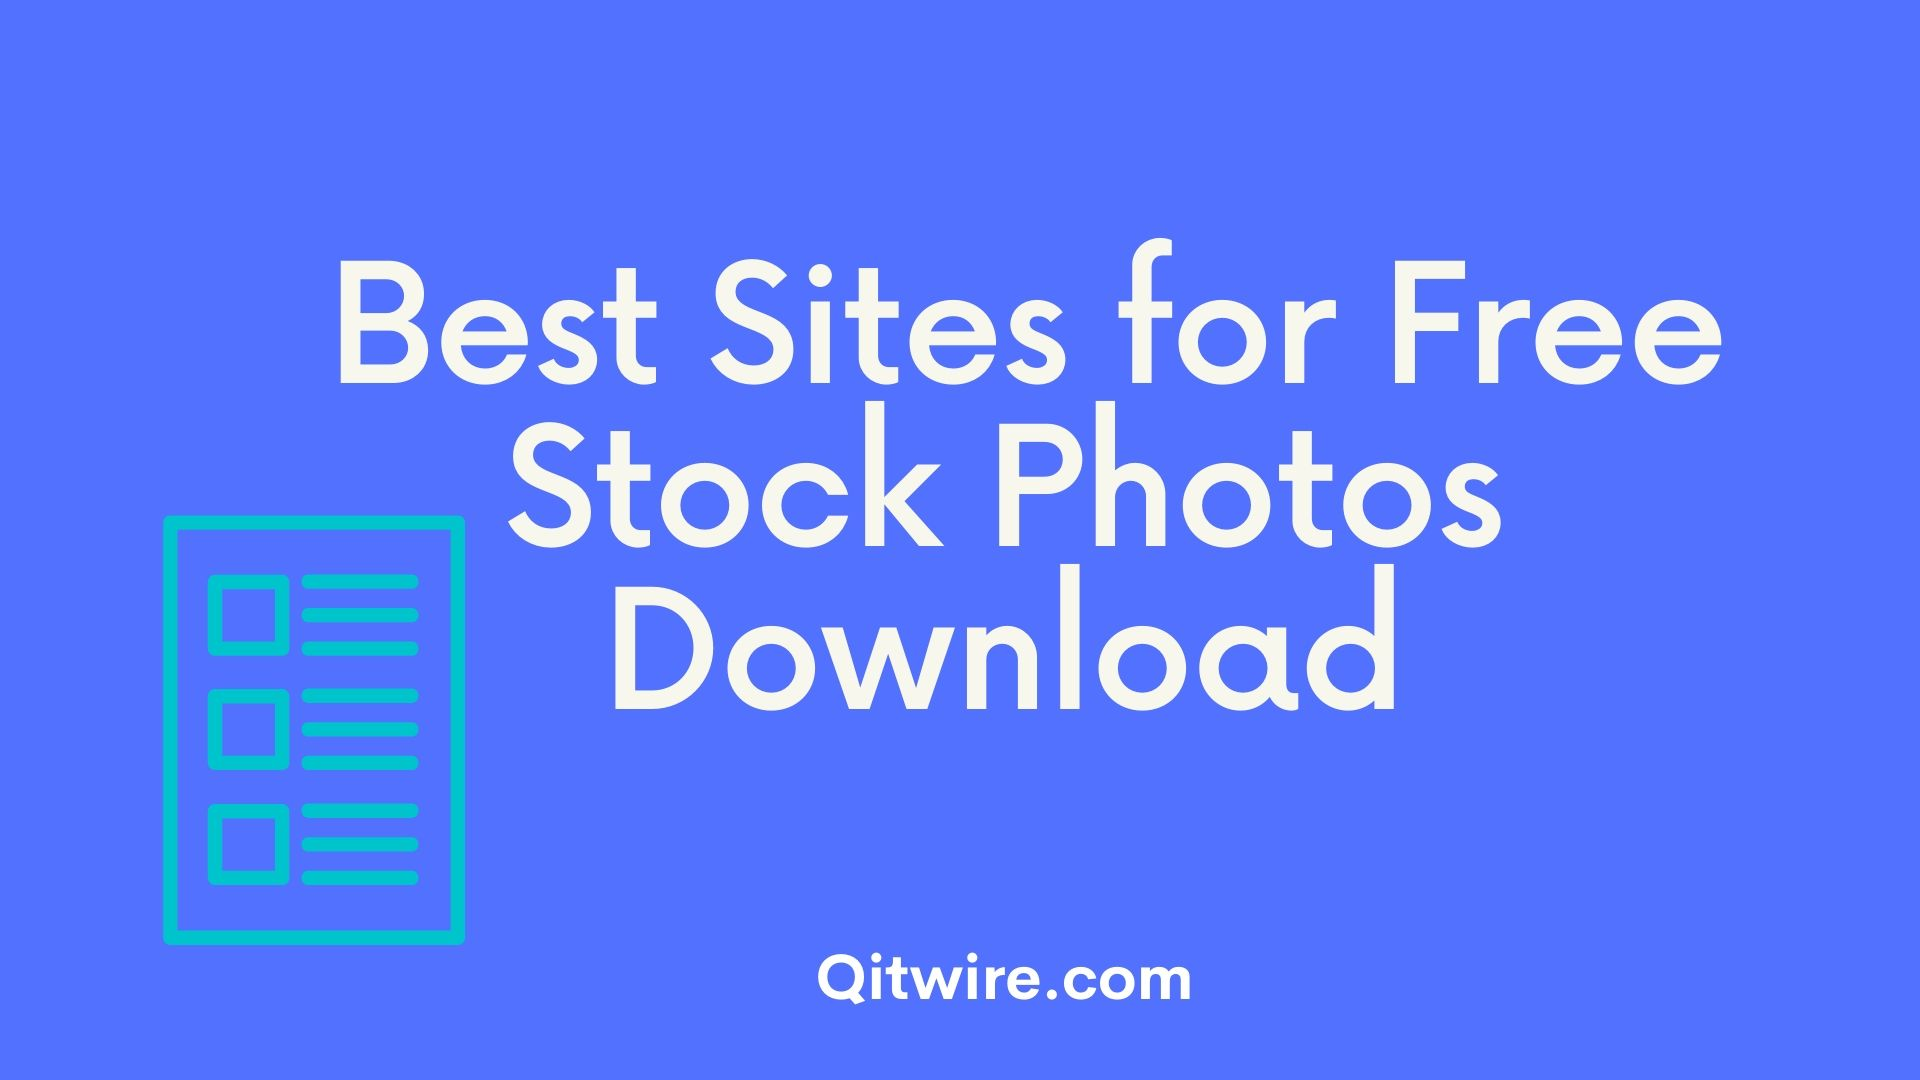 Best Sites for Free Stock Photos Download